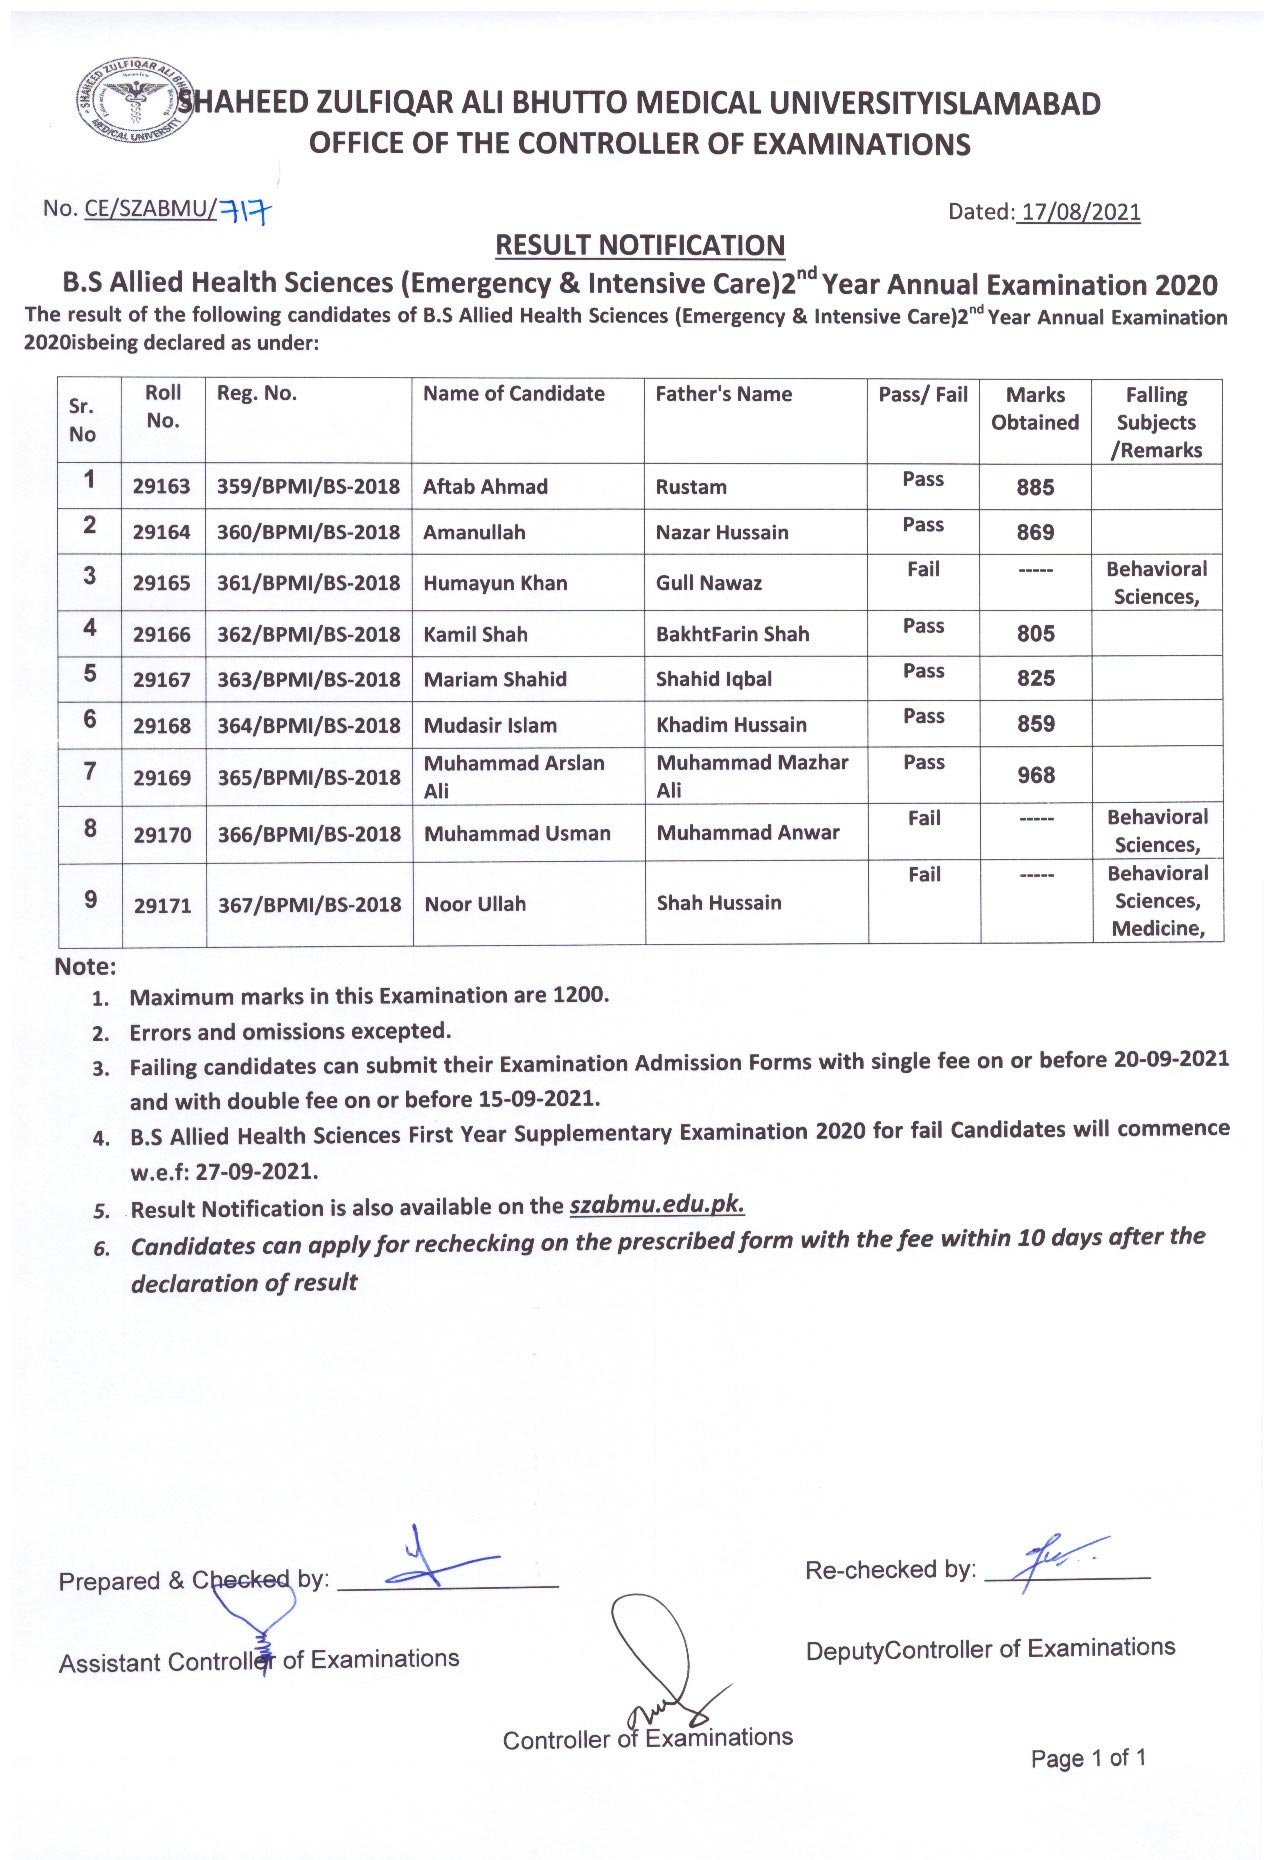 Result Notification - B.S AHS (Emergency & Intensive Care) 2nd Year Annual Examination 2020